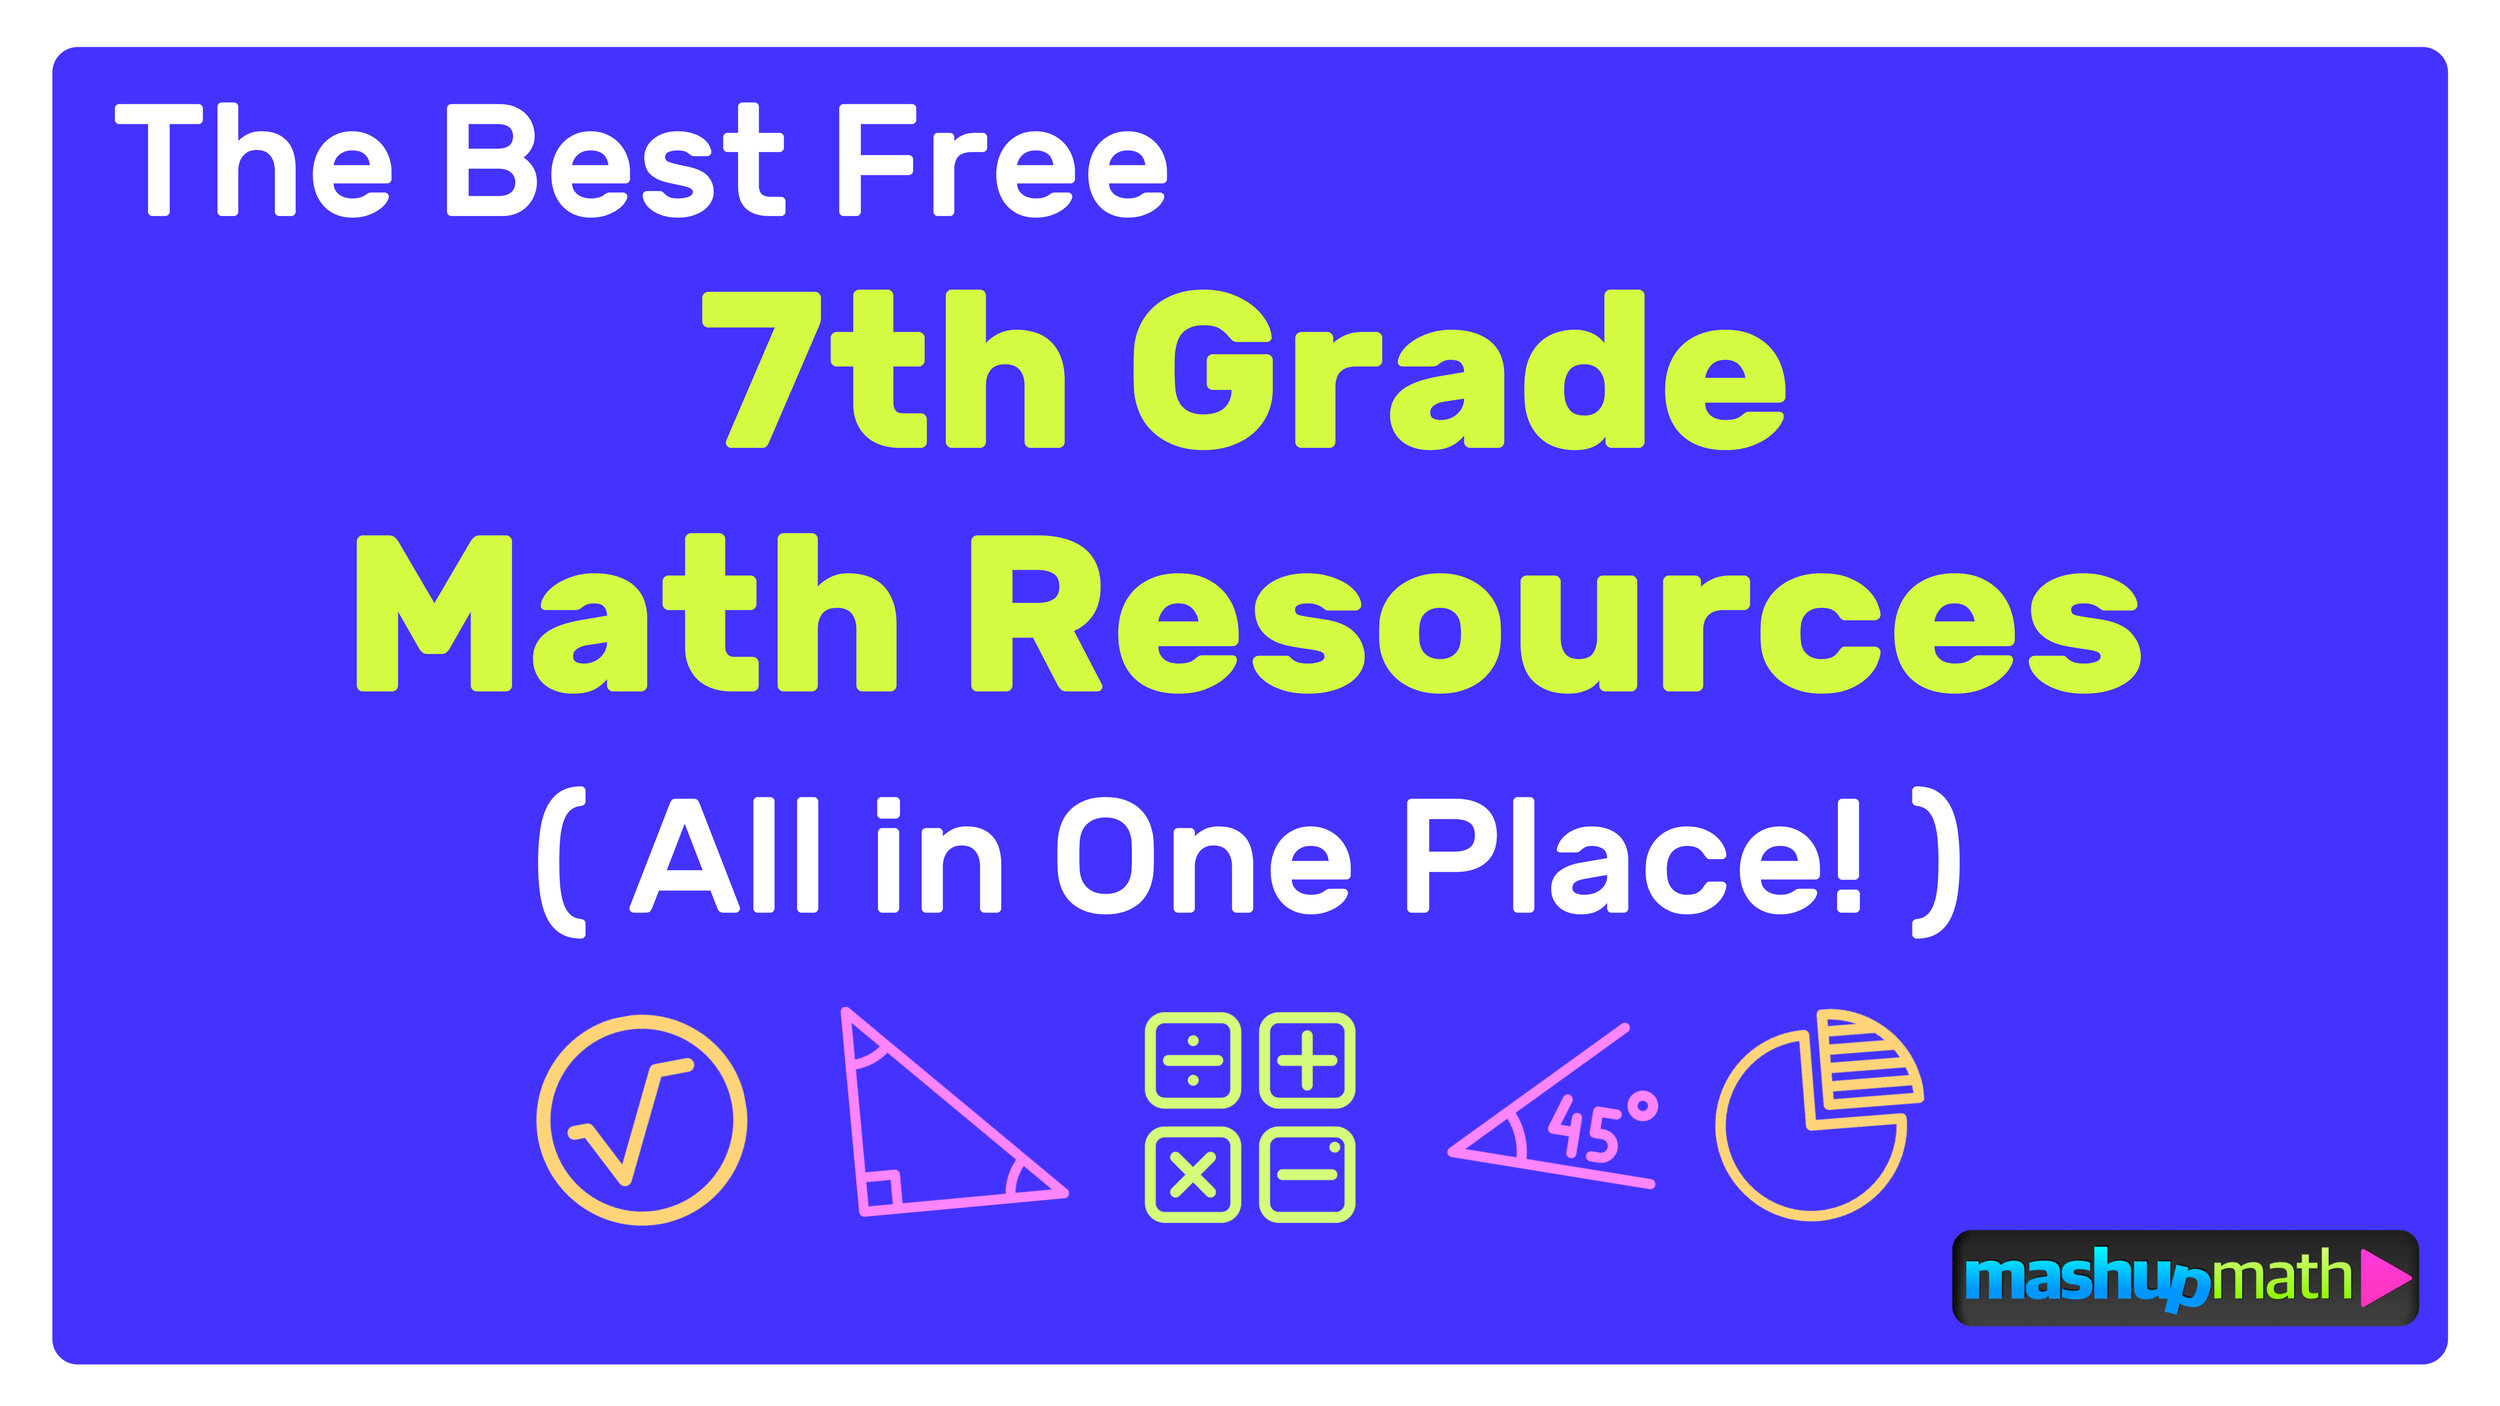 hight resolution of The Best Free 7th Grade Math Resources: Complete List! — Mashup Math